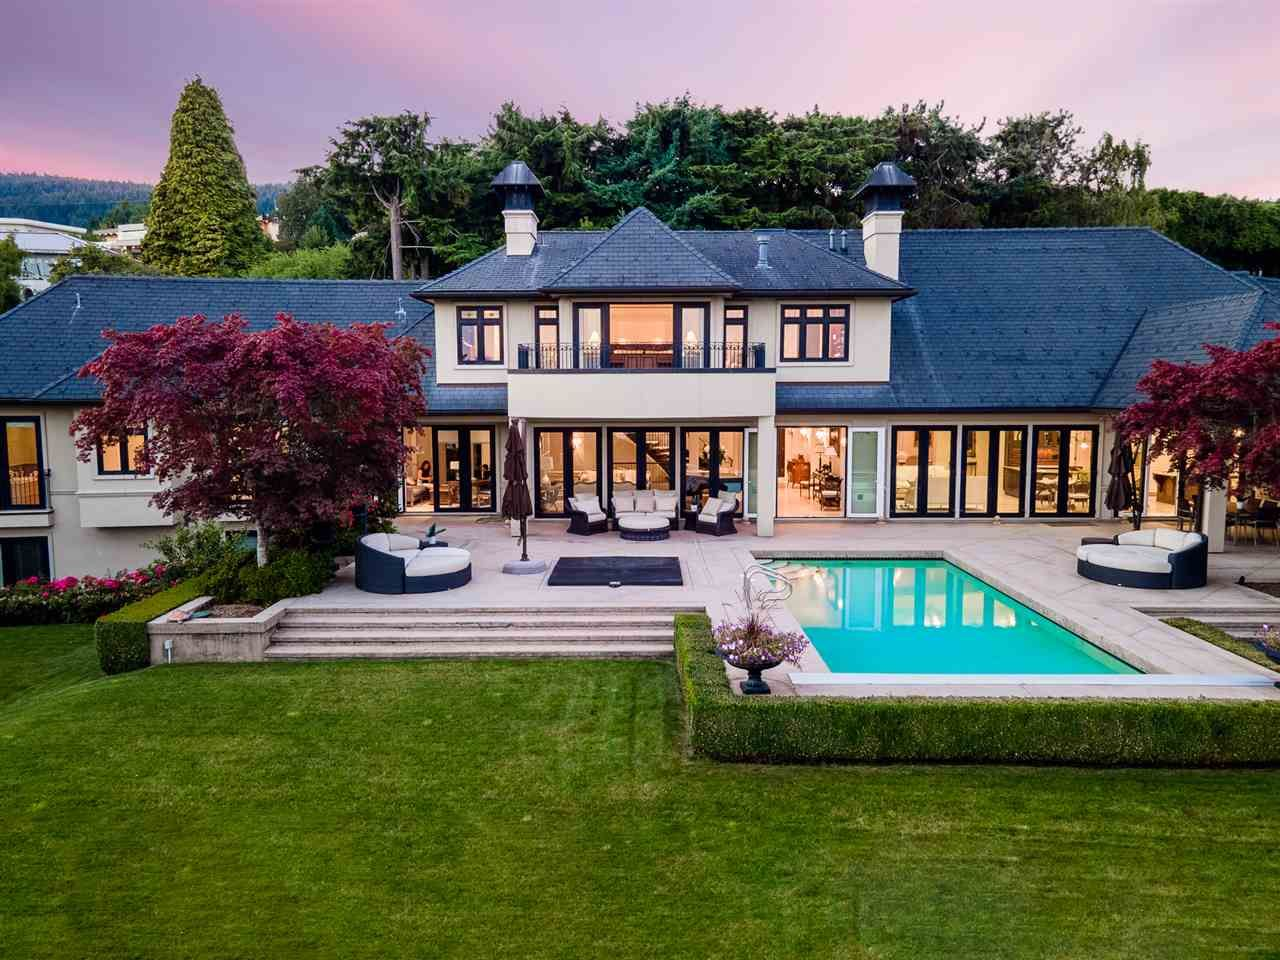 """Main Photo: 835 EYREMOUNT Drive in West Vancouver: British Properties House for sale in """"BRITISH PROPERTIES"""" : MLS®# R2598065"""